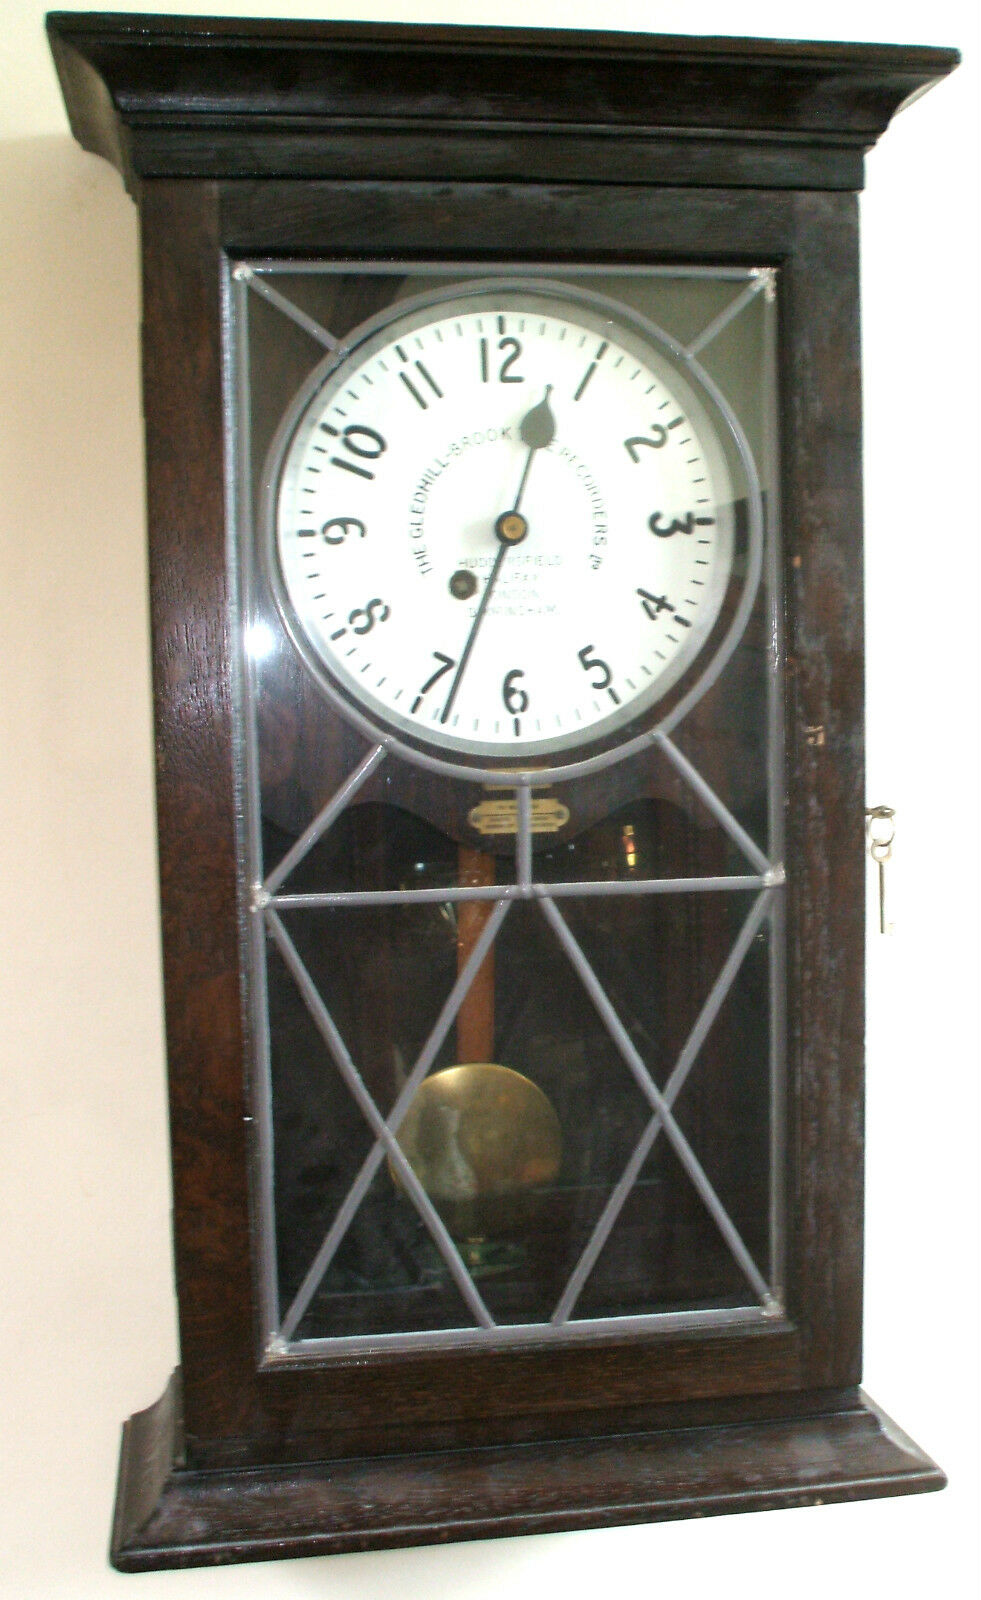 Gledhill - Brook Time Recorders Ltd Fusee Movement Converted to Oak Wall Clock